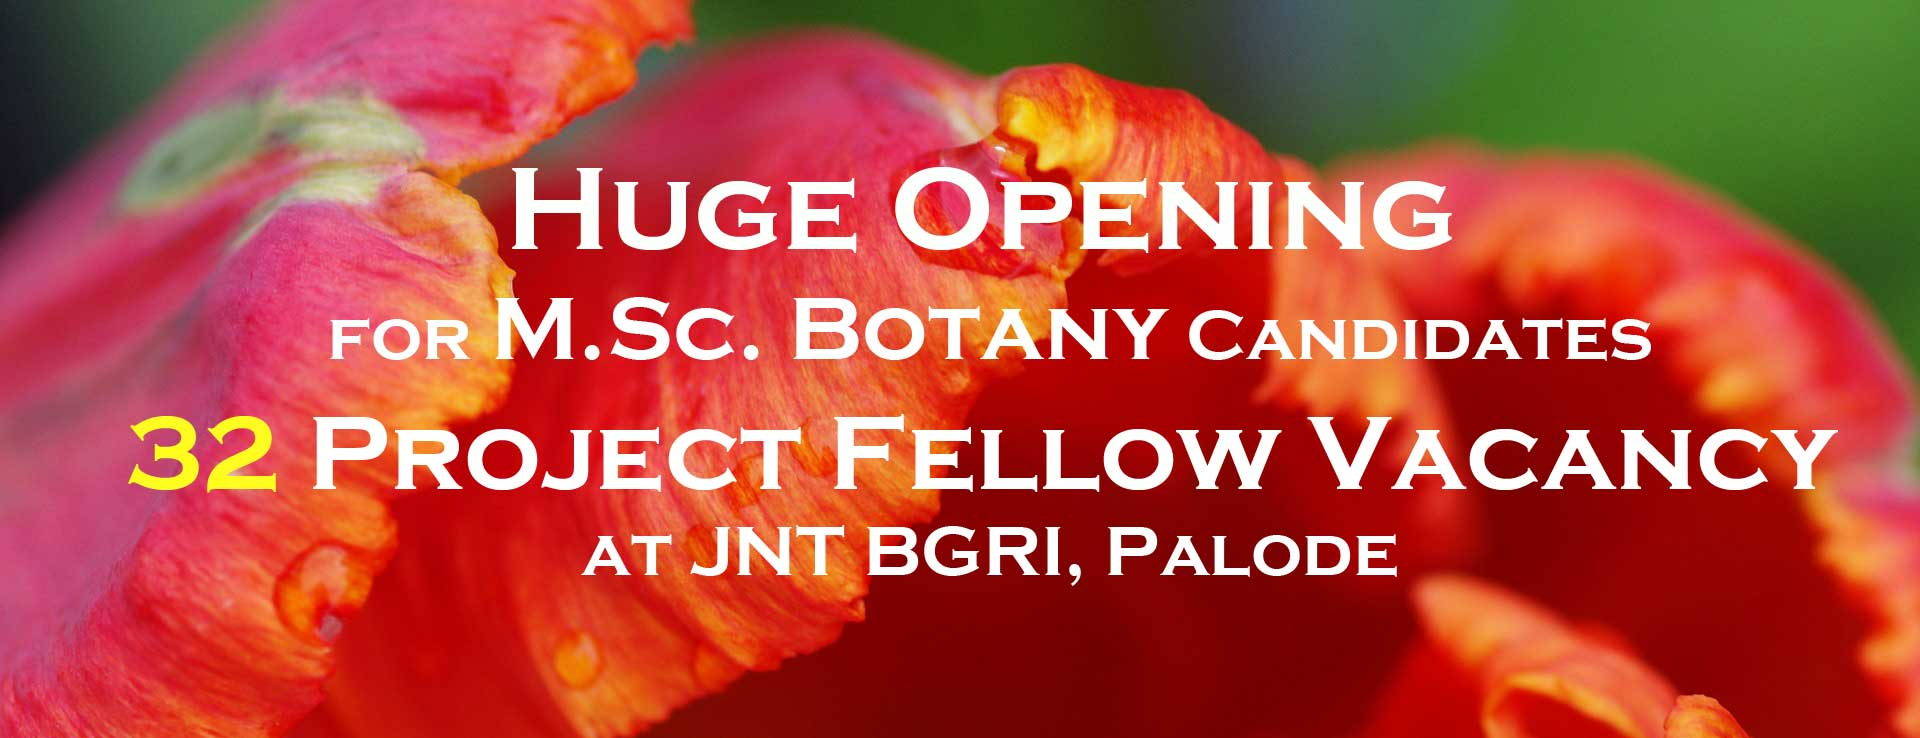 JNTBGRI Botany project fellow vacancy notification